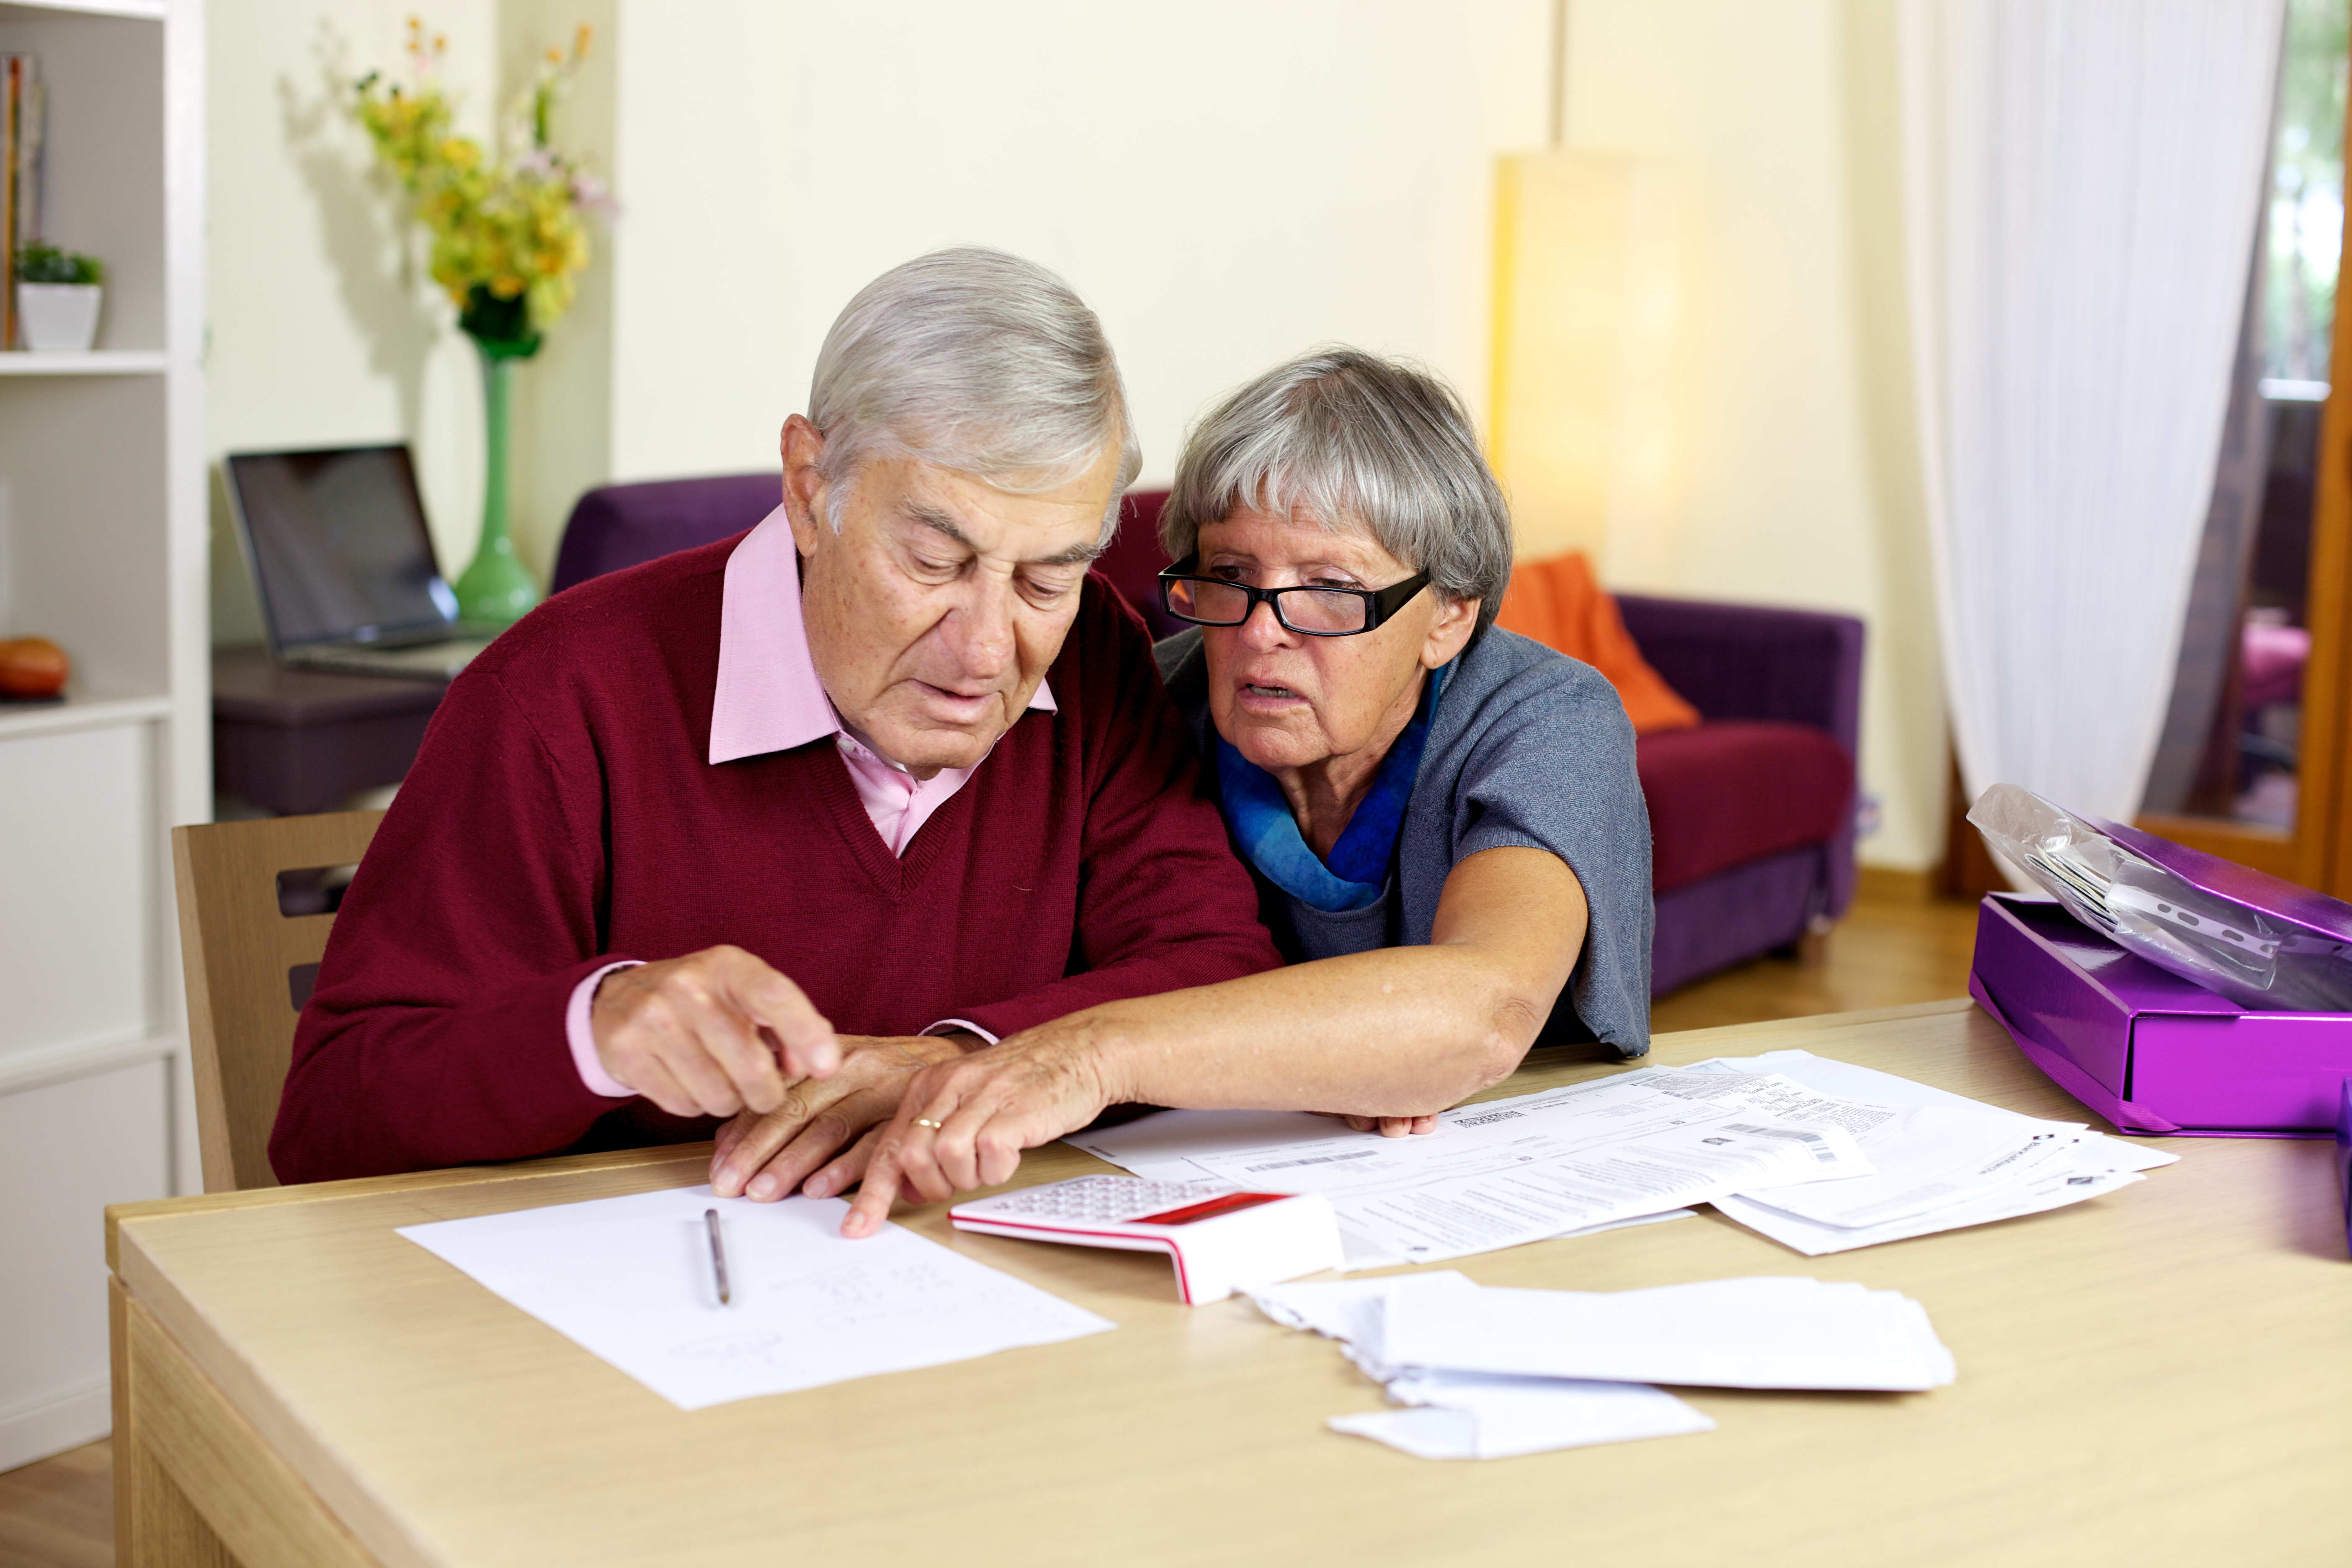 5 Ways to Maximize Your Retirement Funds